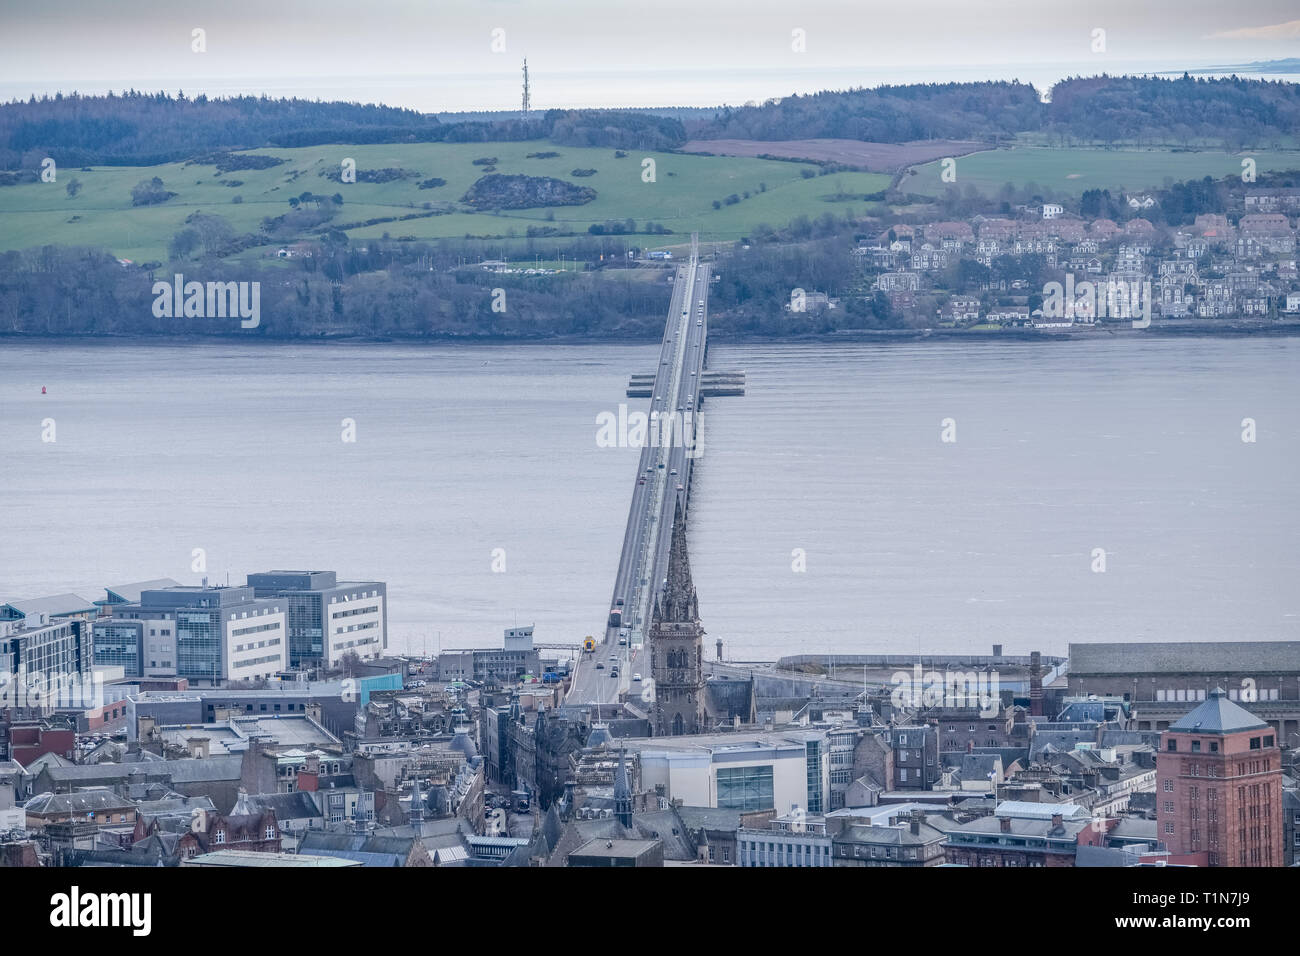 From the monument at Dundee law Hill looking down over the city to the Fourth or Tay Road Bridge Dundee Scotland. - Stock Image